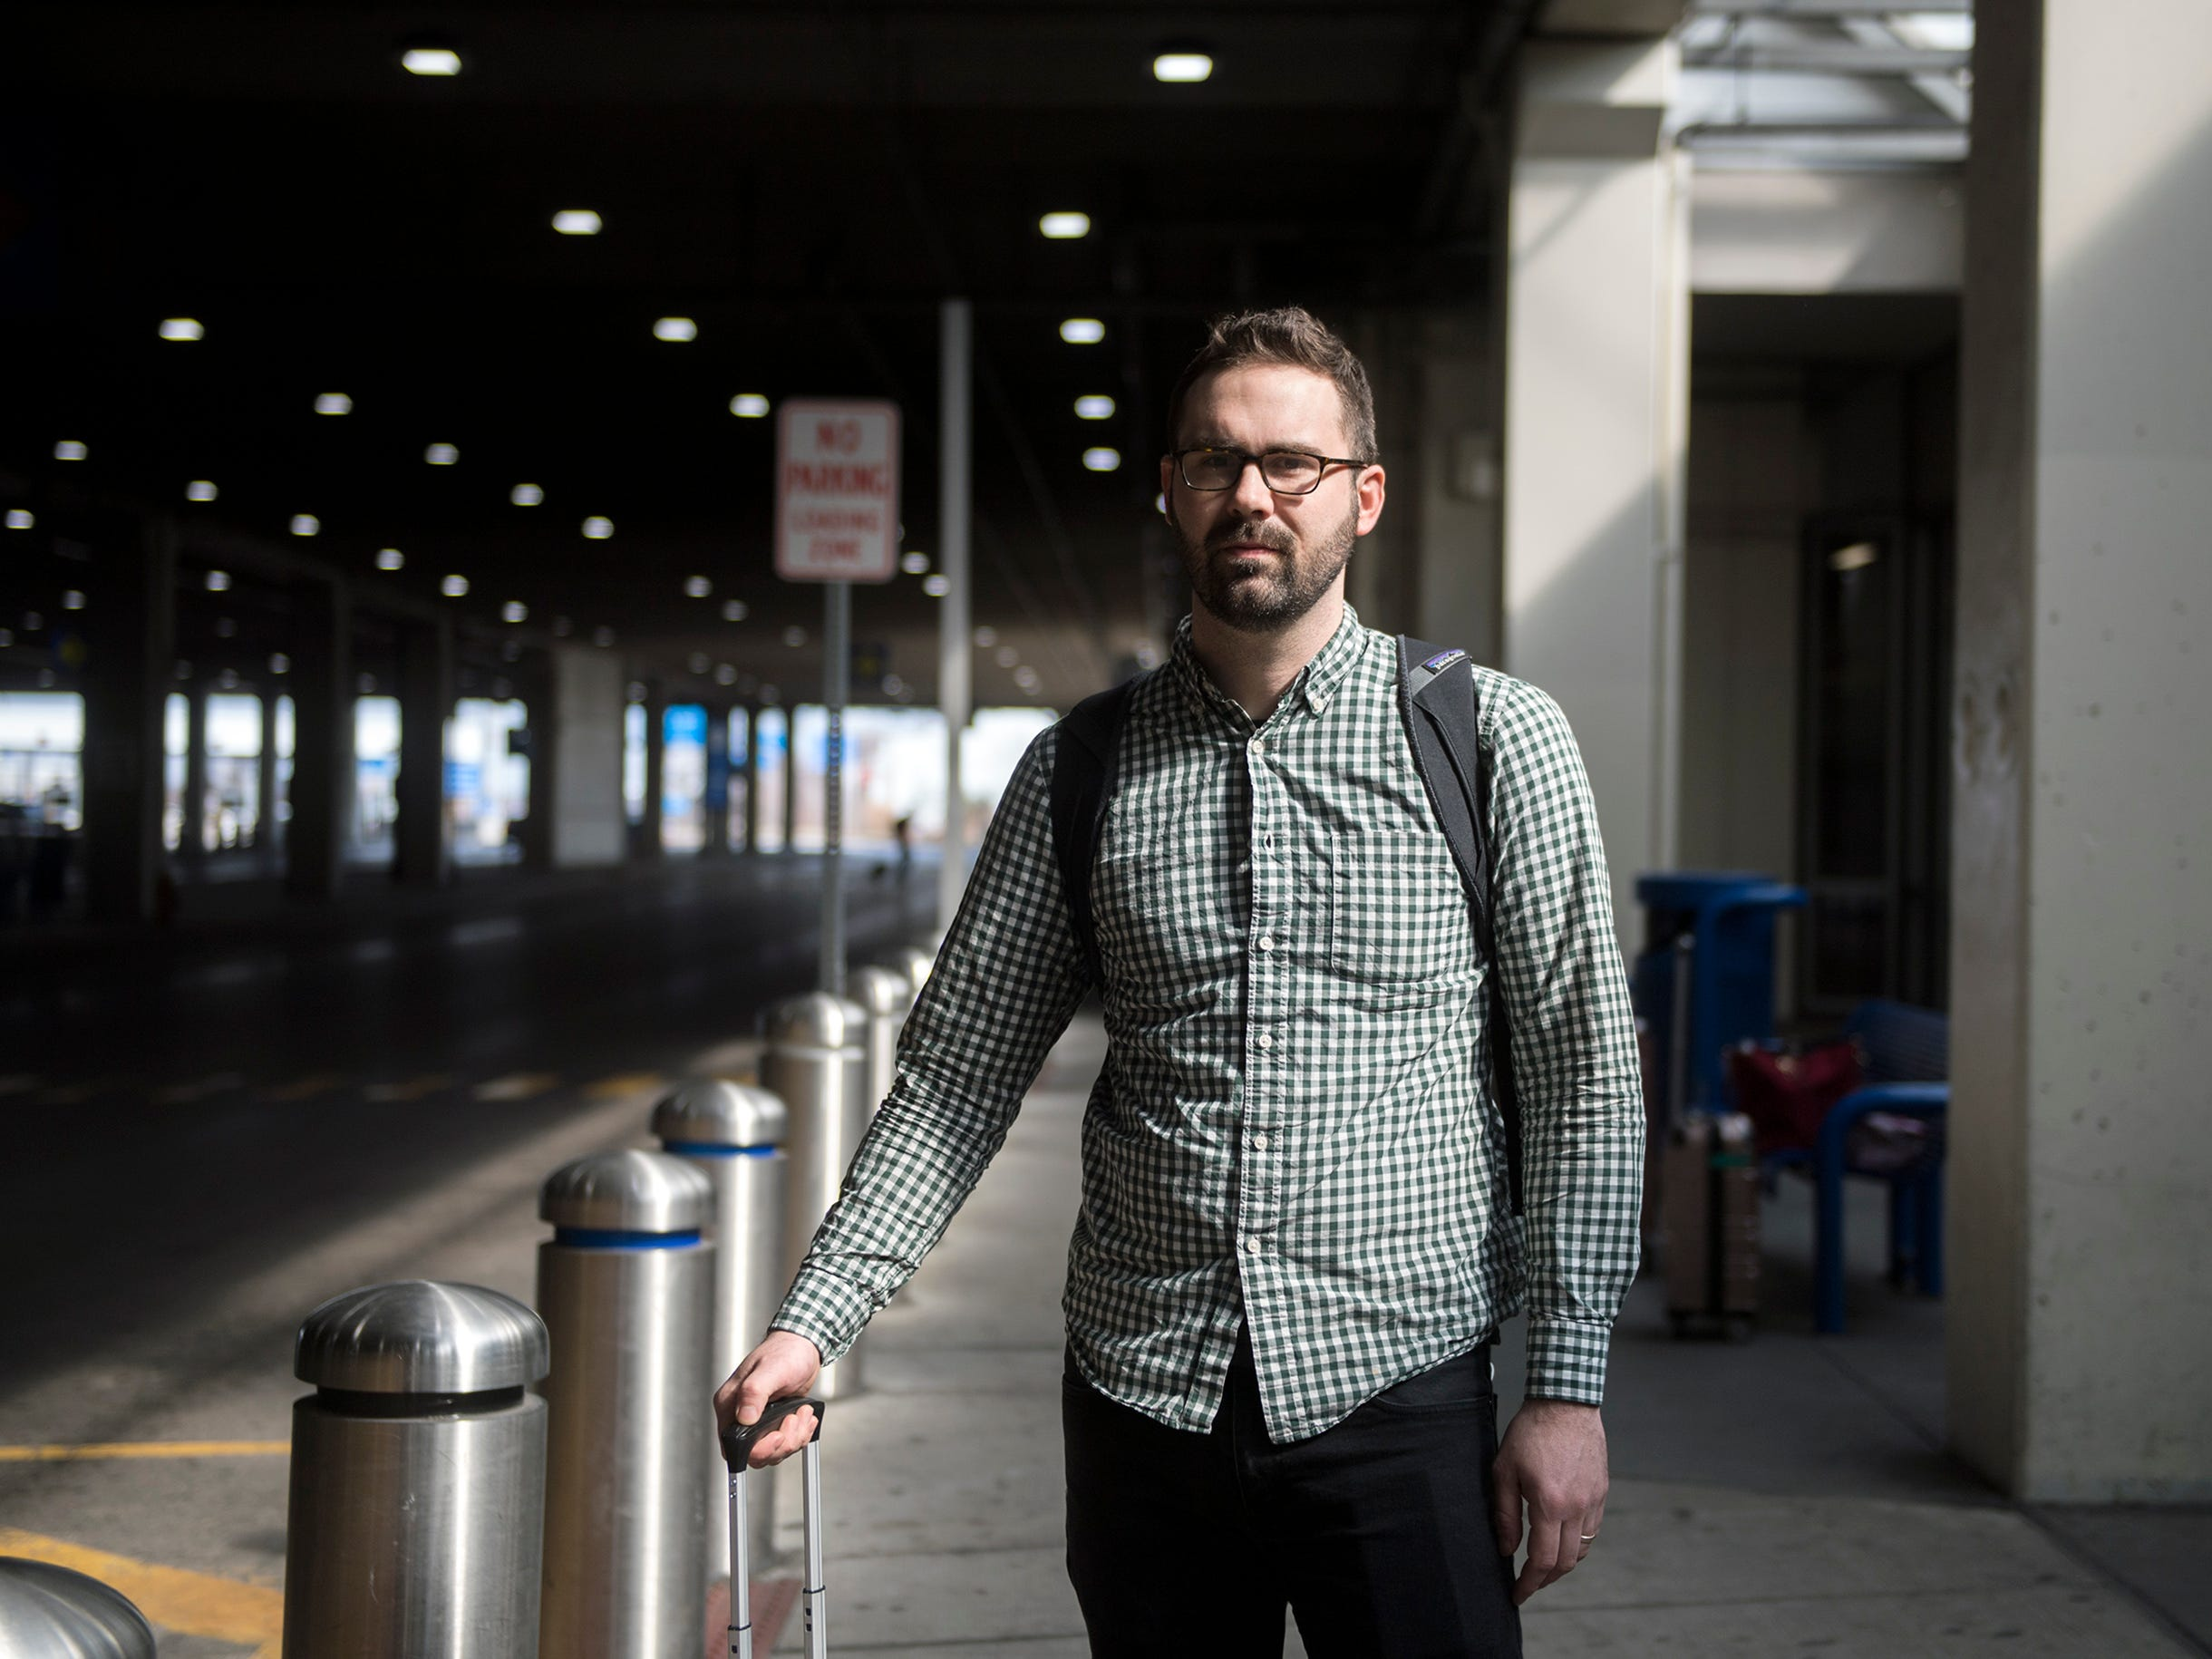 John Transue, 34, of Mount Laurel poses outside baggage claim Thursday, March 14, 2019 at Philadelphia International Airport in Philadelphia, Pa. Transue was traveling from Atlanta and supports the decision to ground the Boeing 737 Max planes.